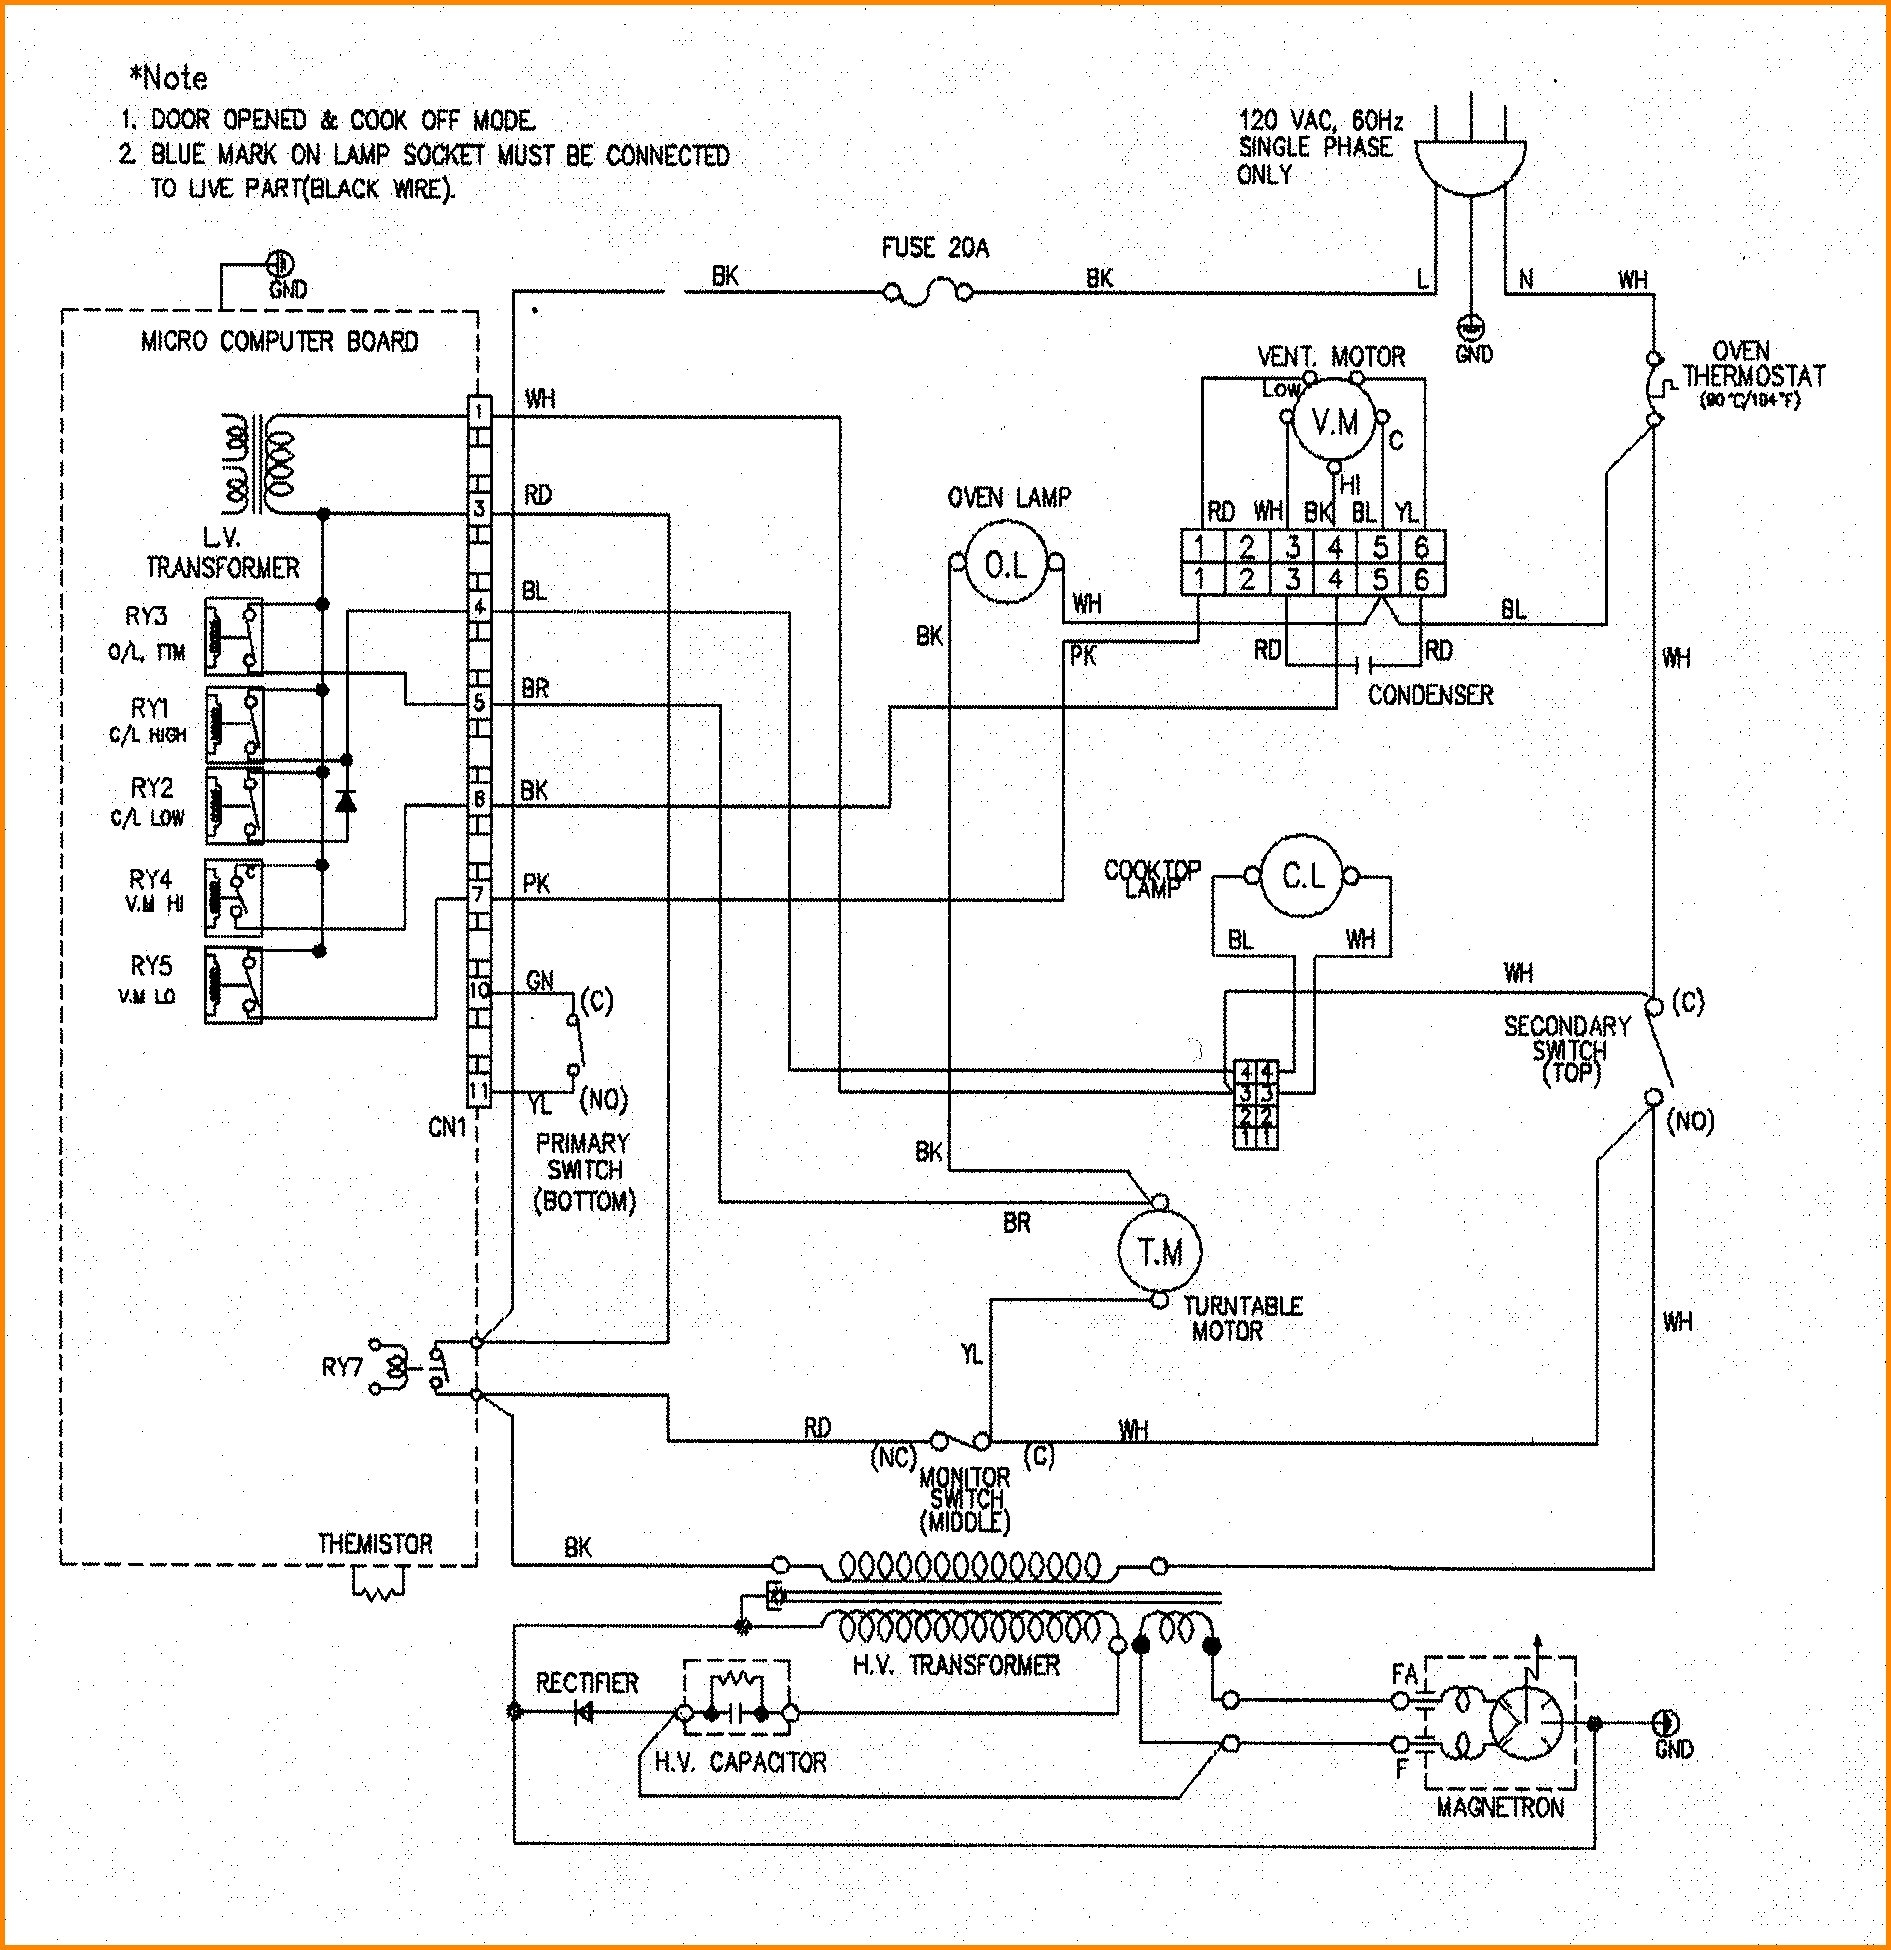 Oven Piping Diagram